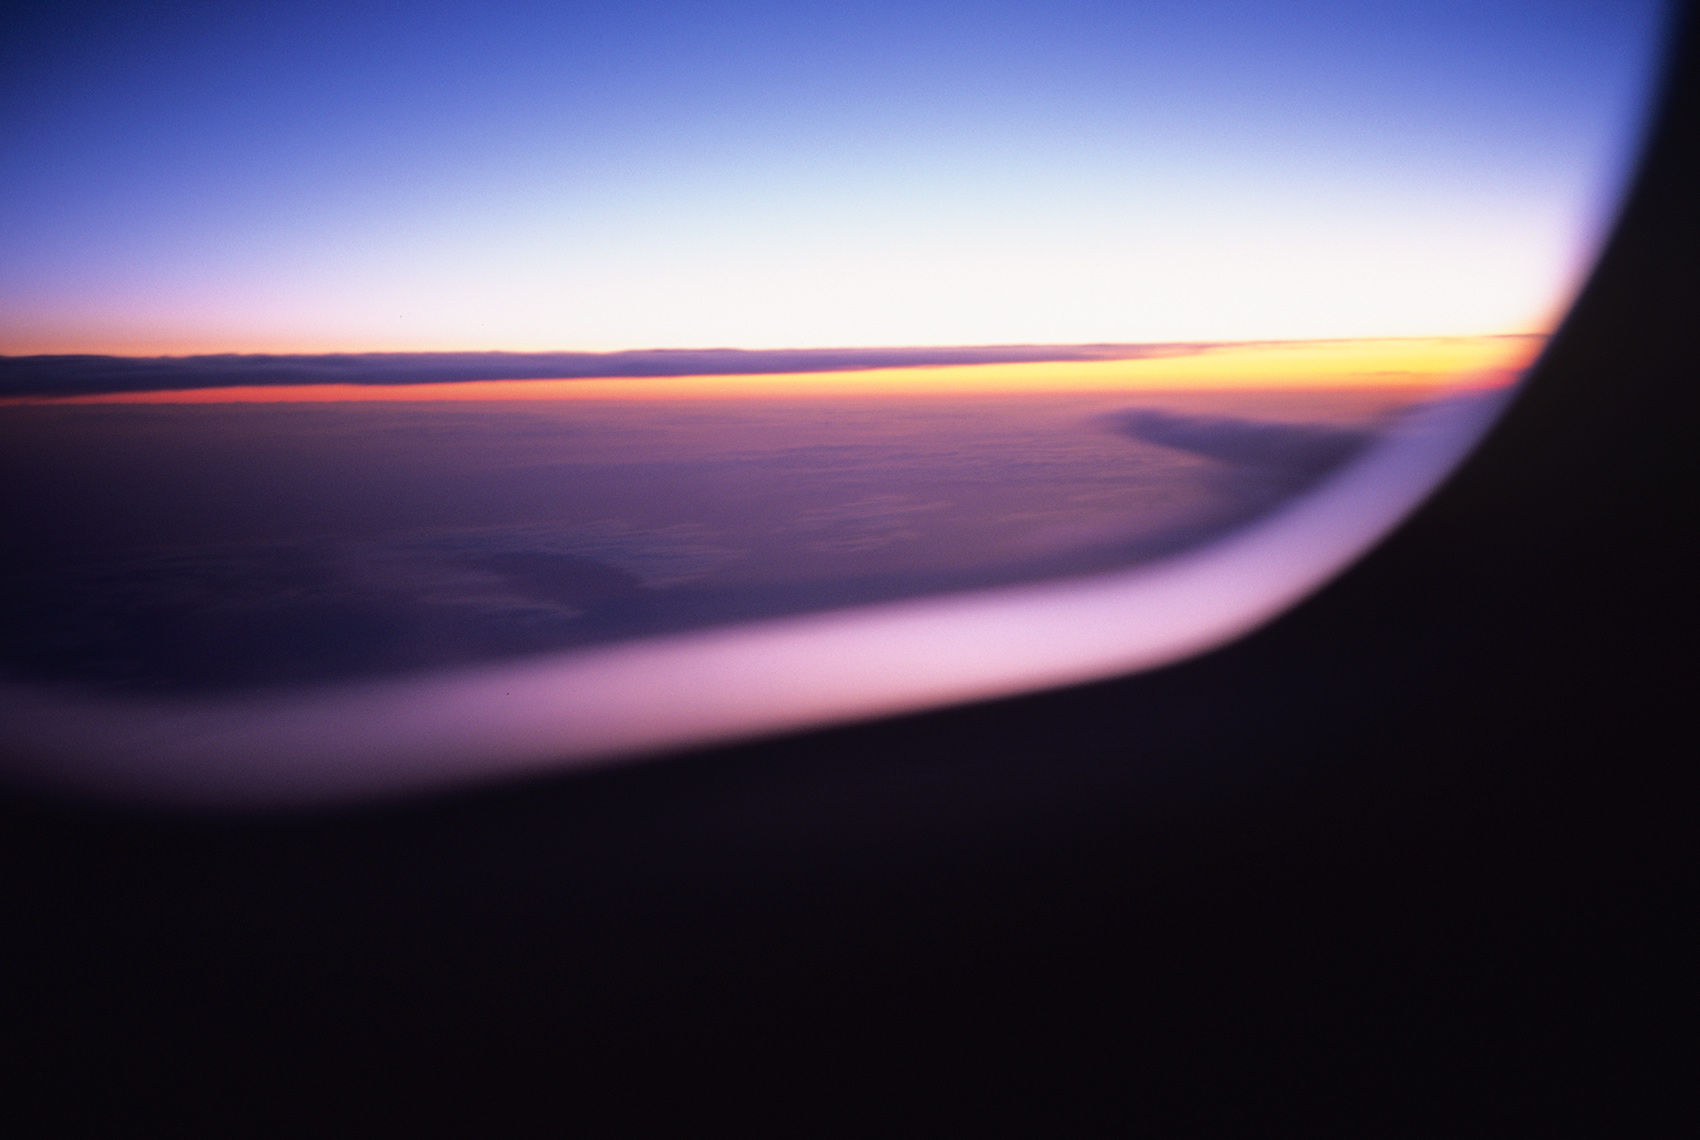 North Atlantic window seat sunrise |  Editorial Travel Photographer